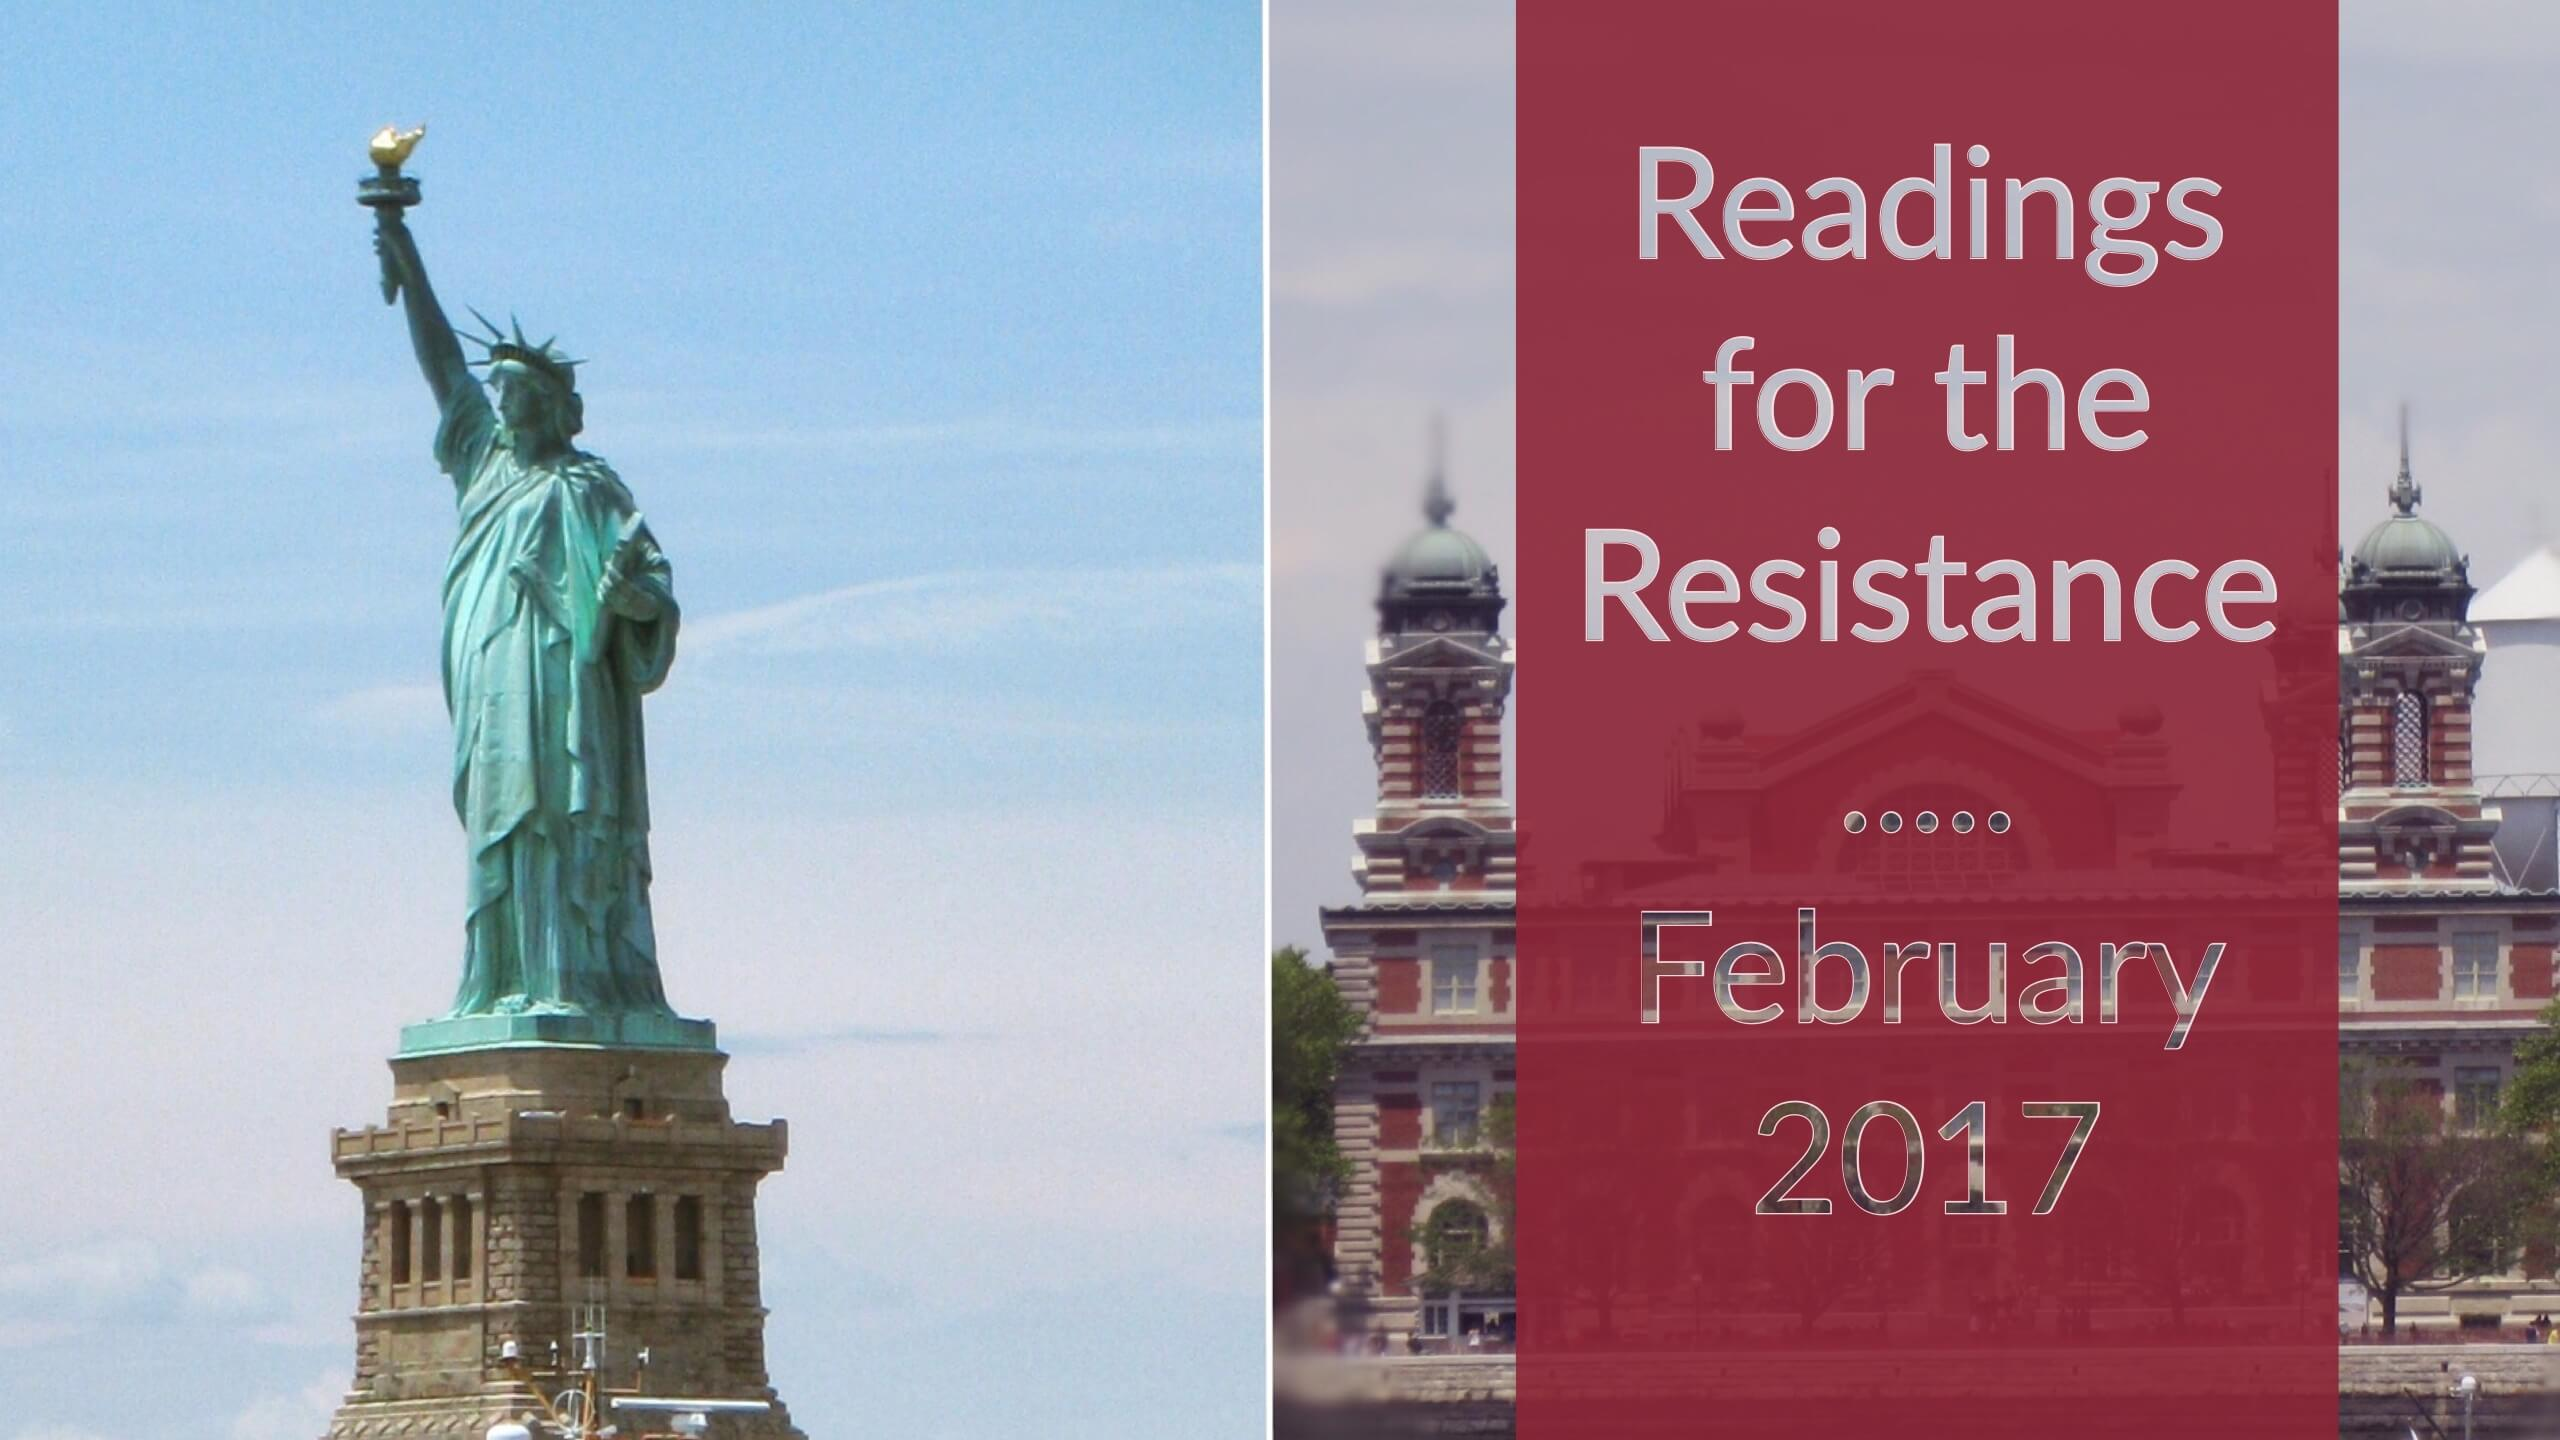 readings for the resistance, february 2017